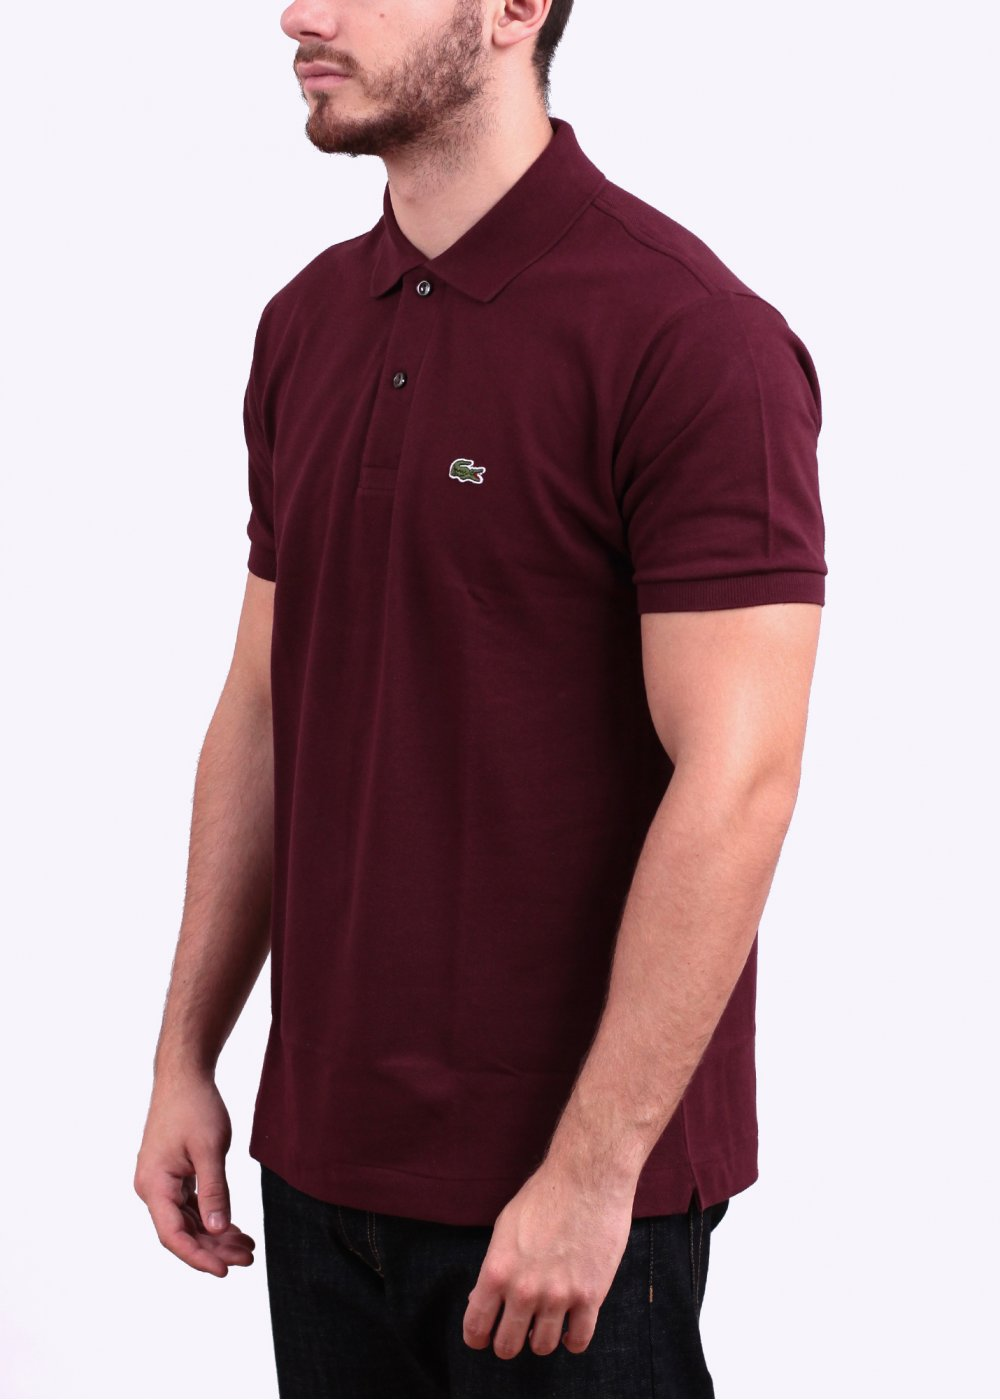 lacoste short sleeve logo polo shirt maroon